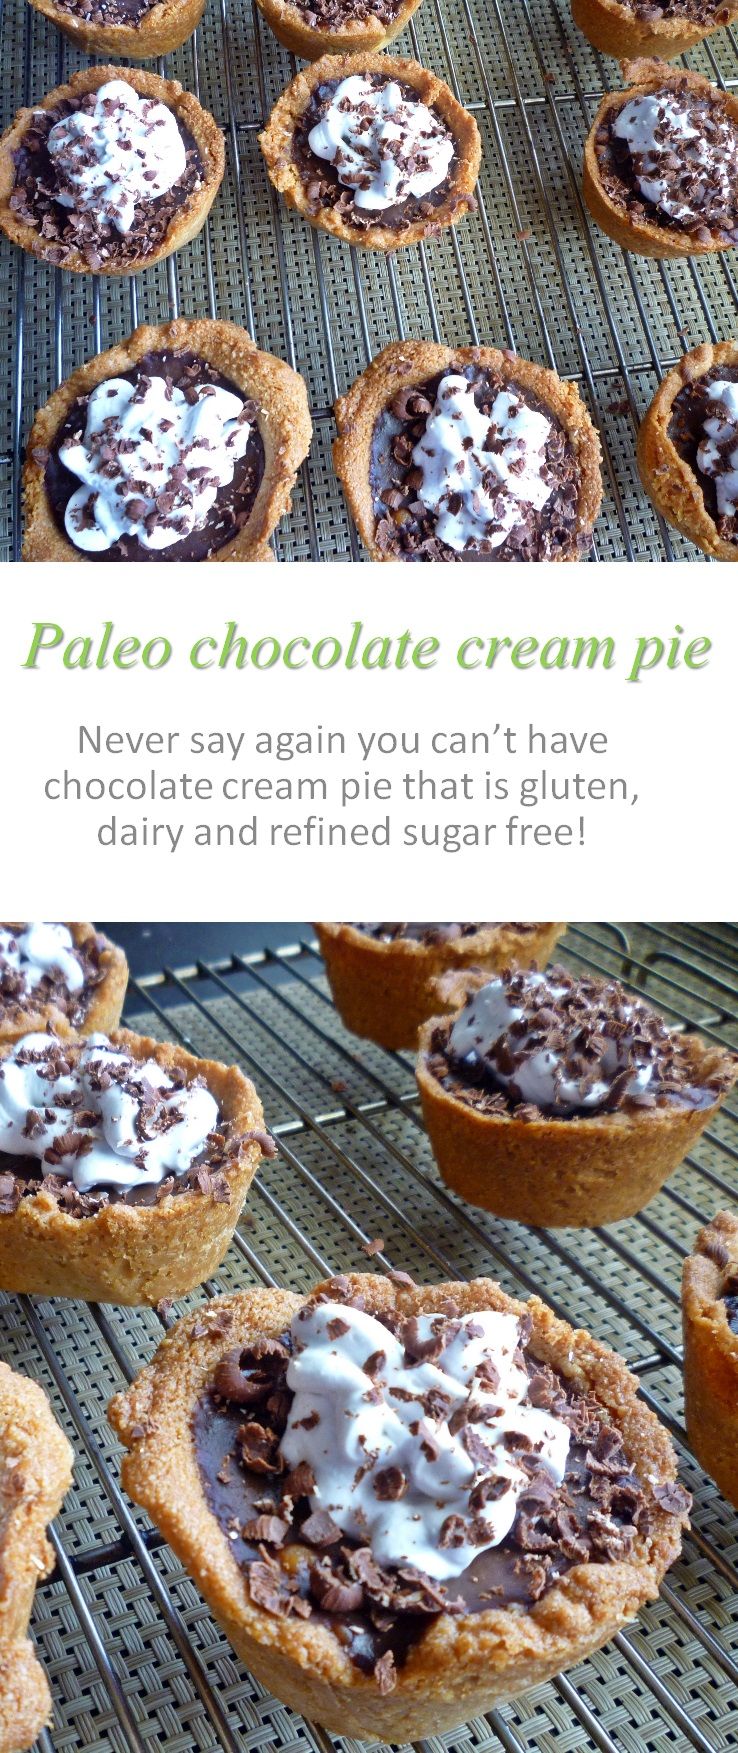 Paleo chocolate cream pies, a decadent dessert with no refined sugar, dairy or gluten! Sure to please even the pickiest critic! #paleo